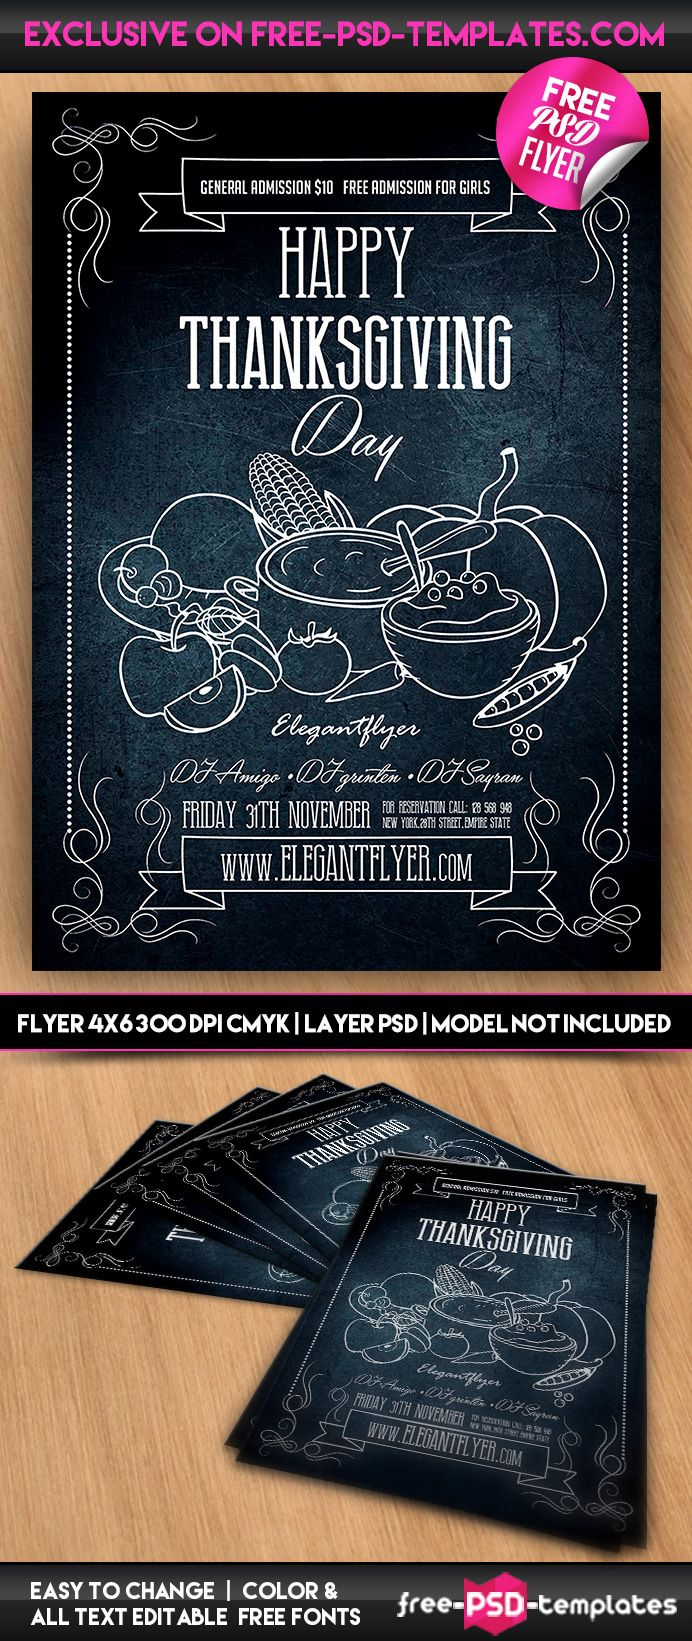 Free Thanksgiving Flyer In Psd Available For Download Mockups